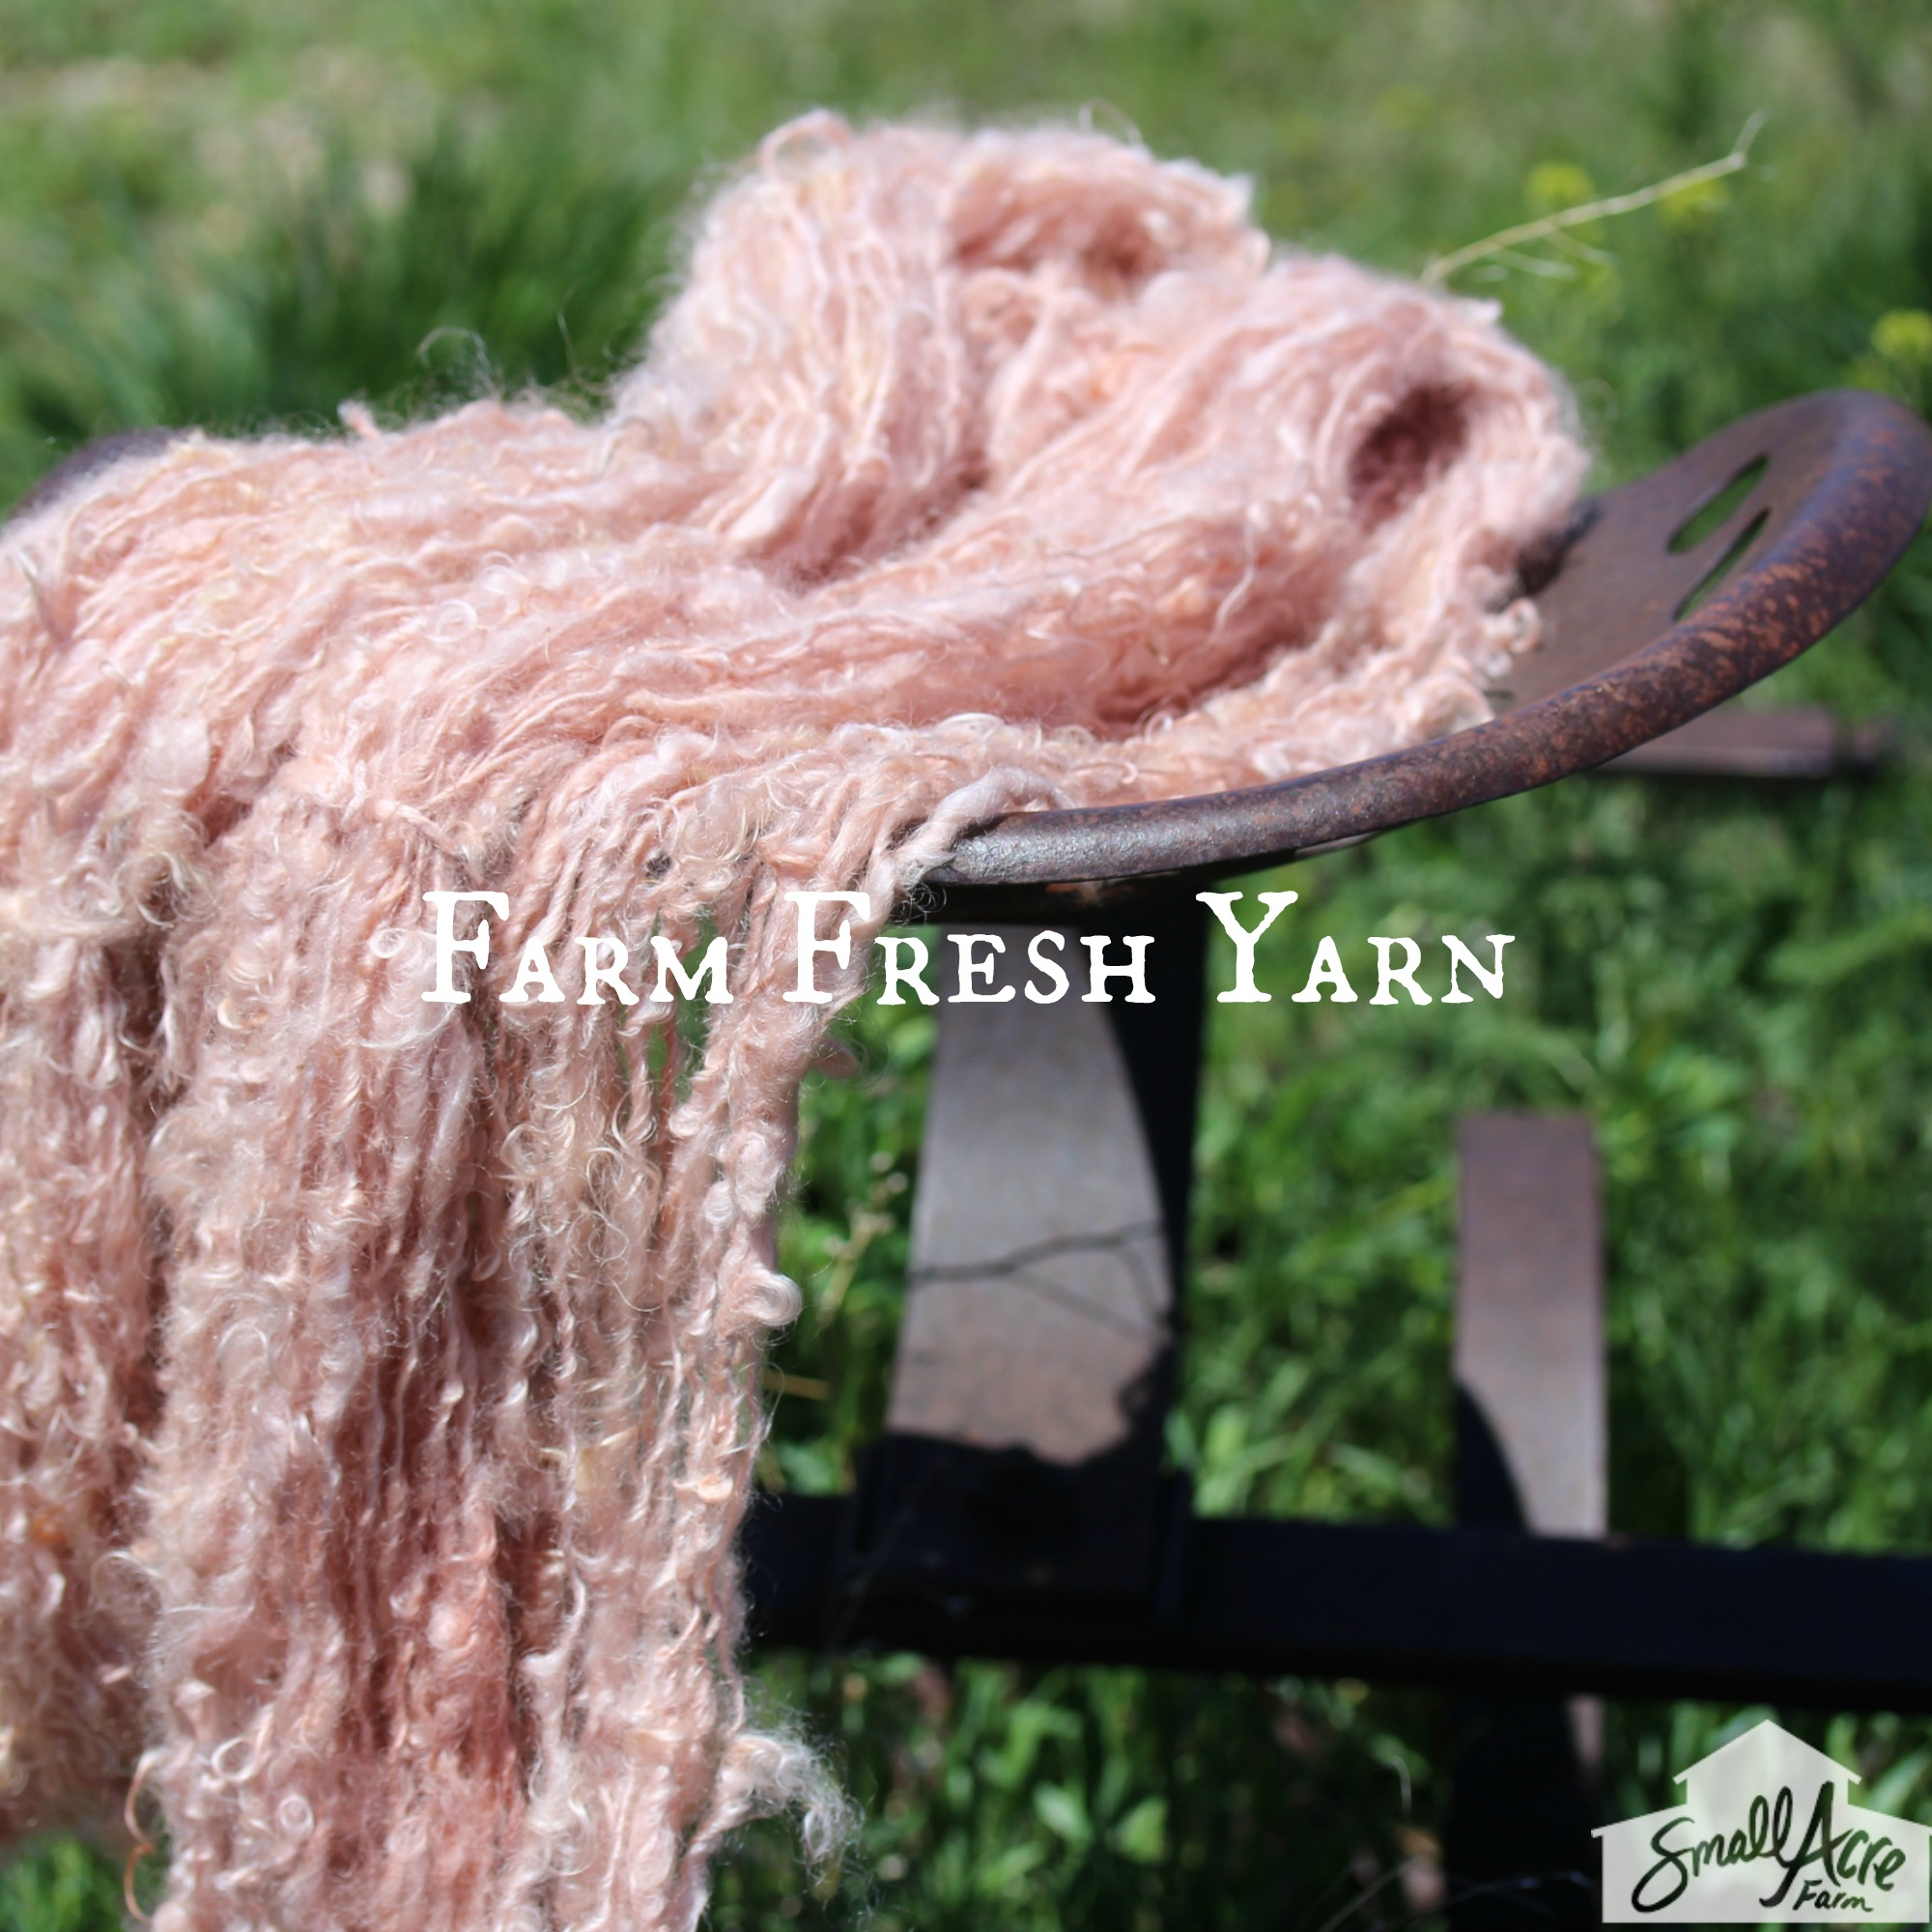 Farm Fresh Yarn with logo.jpg